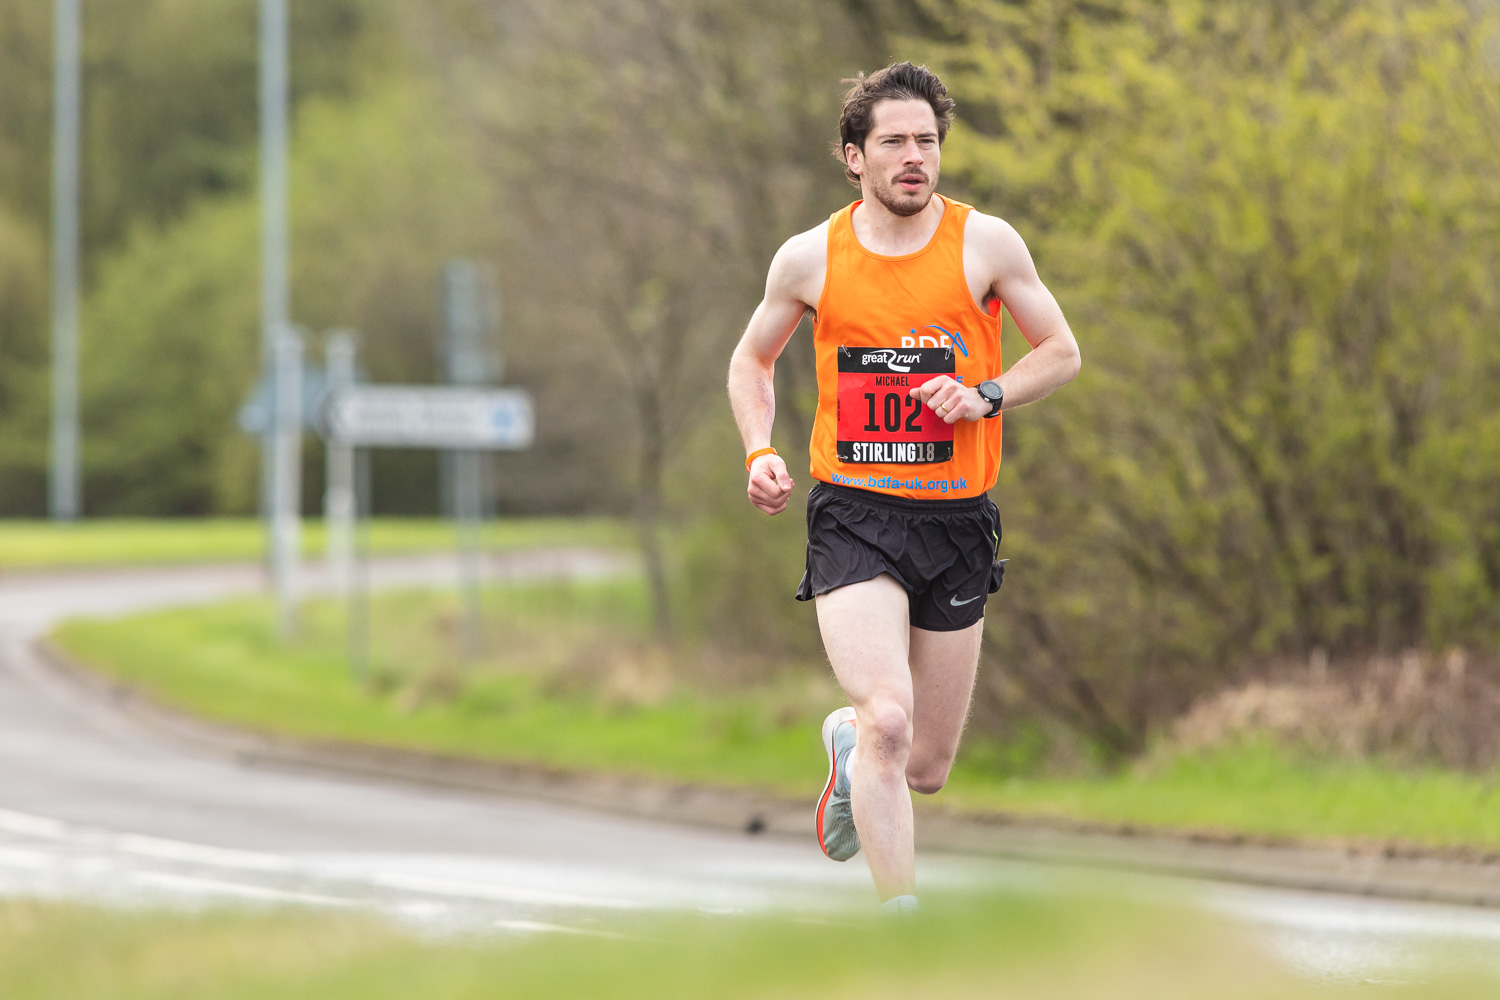 Michael Wright takes the lead and he kept it, making him the winner of Stirling Marathon 2018 with 2:29:38 !